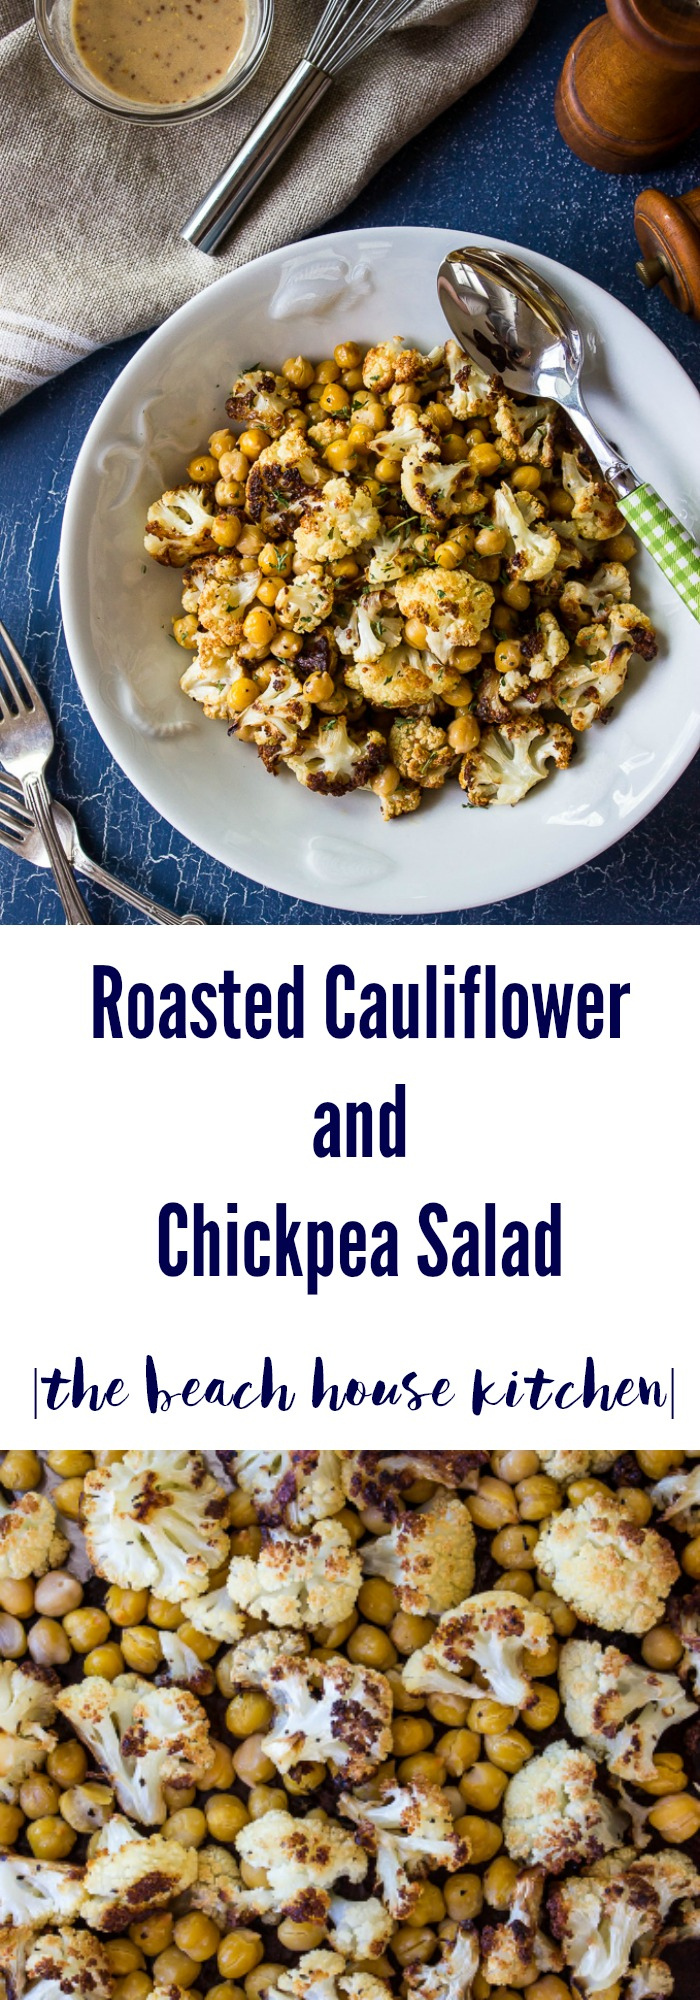 Roasted Cauliflower and Chickpea Salad